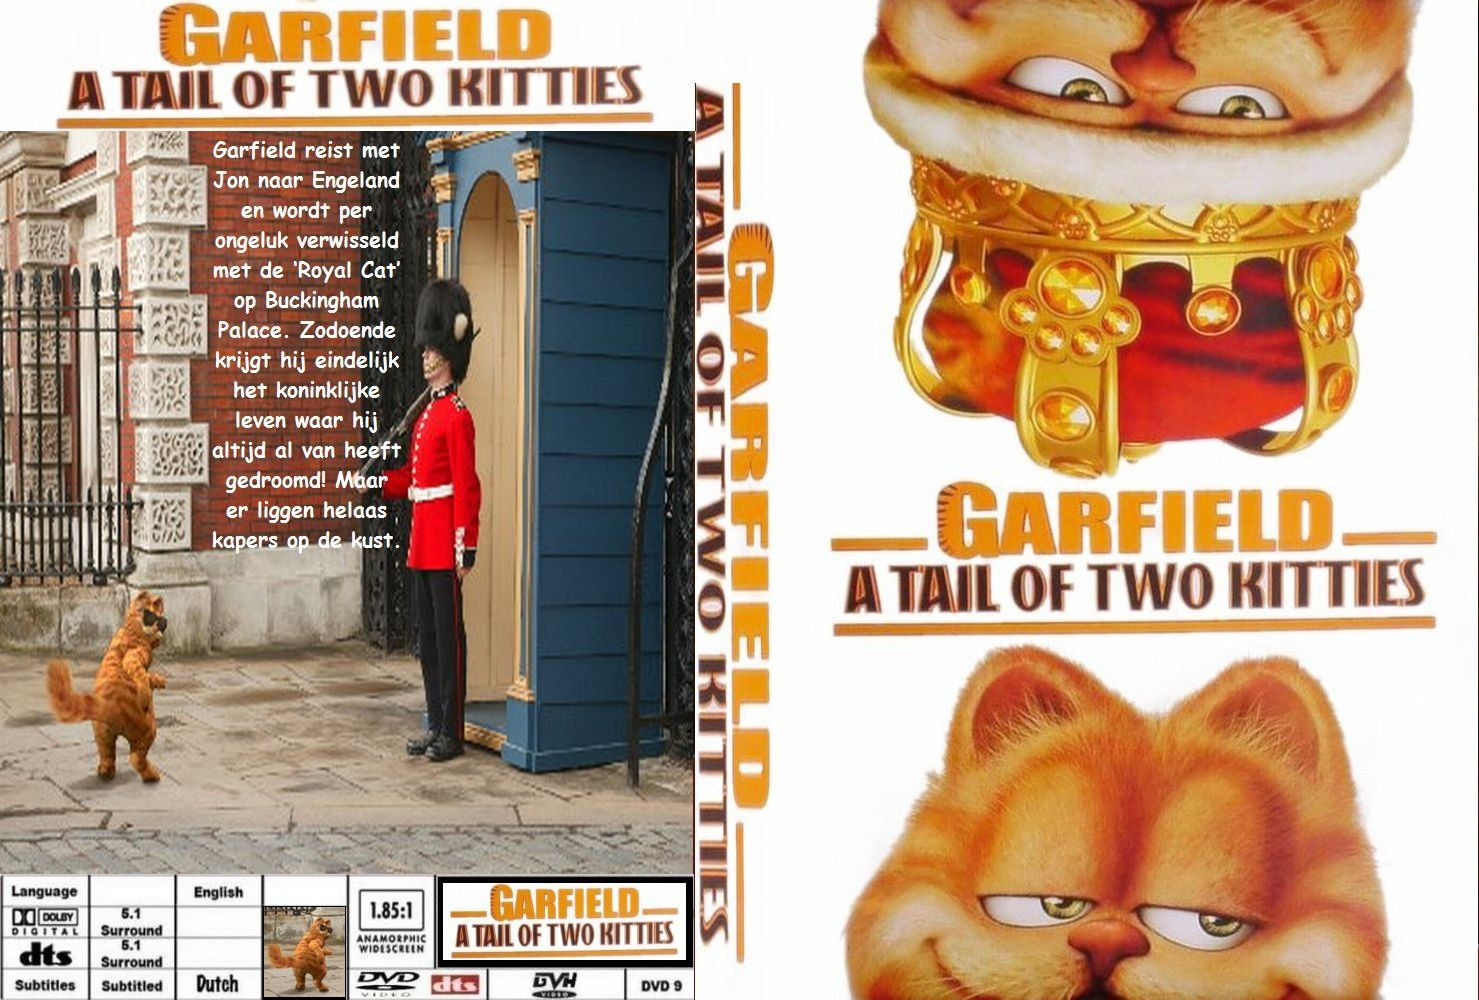 Garfield A Tail Of Two Kitties Dvd Nl Custom Dvd Covers Cover Century Over 500 000 Album Art Covers For Free